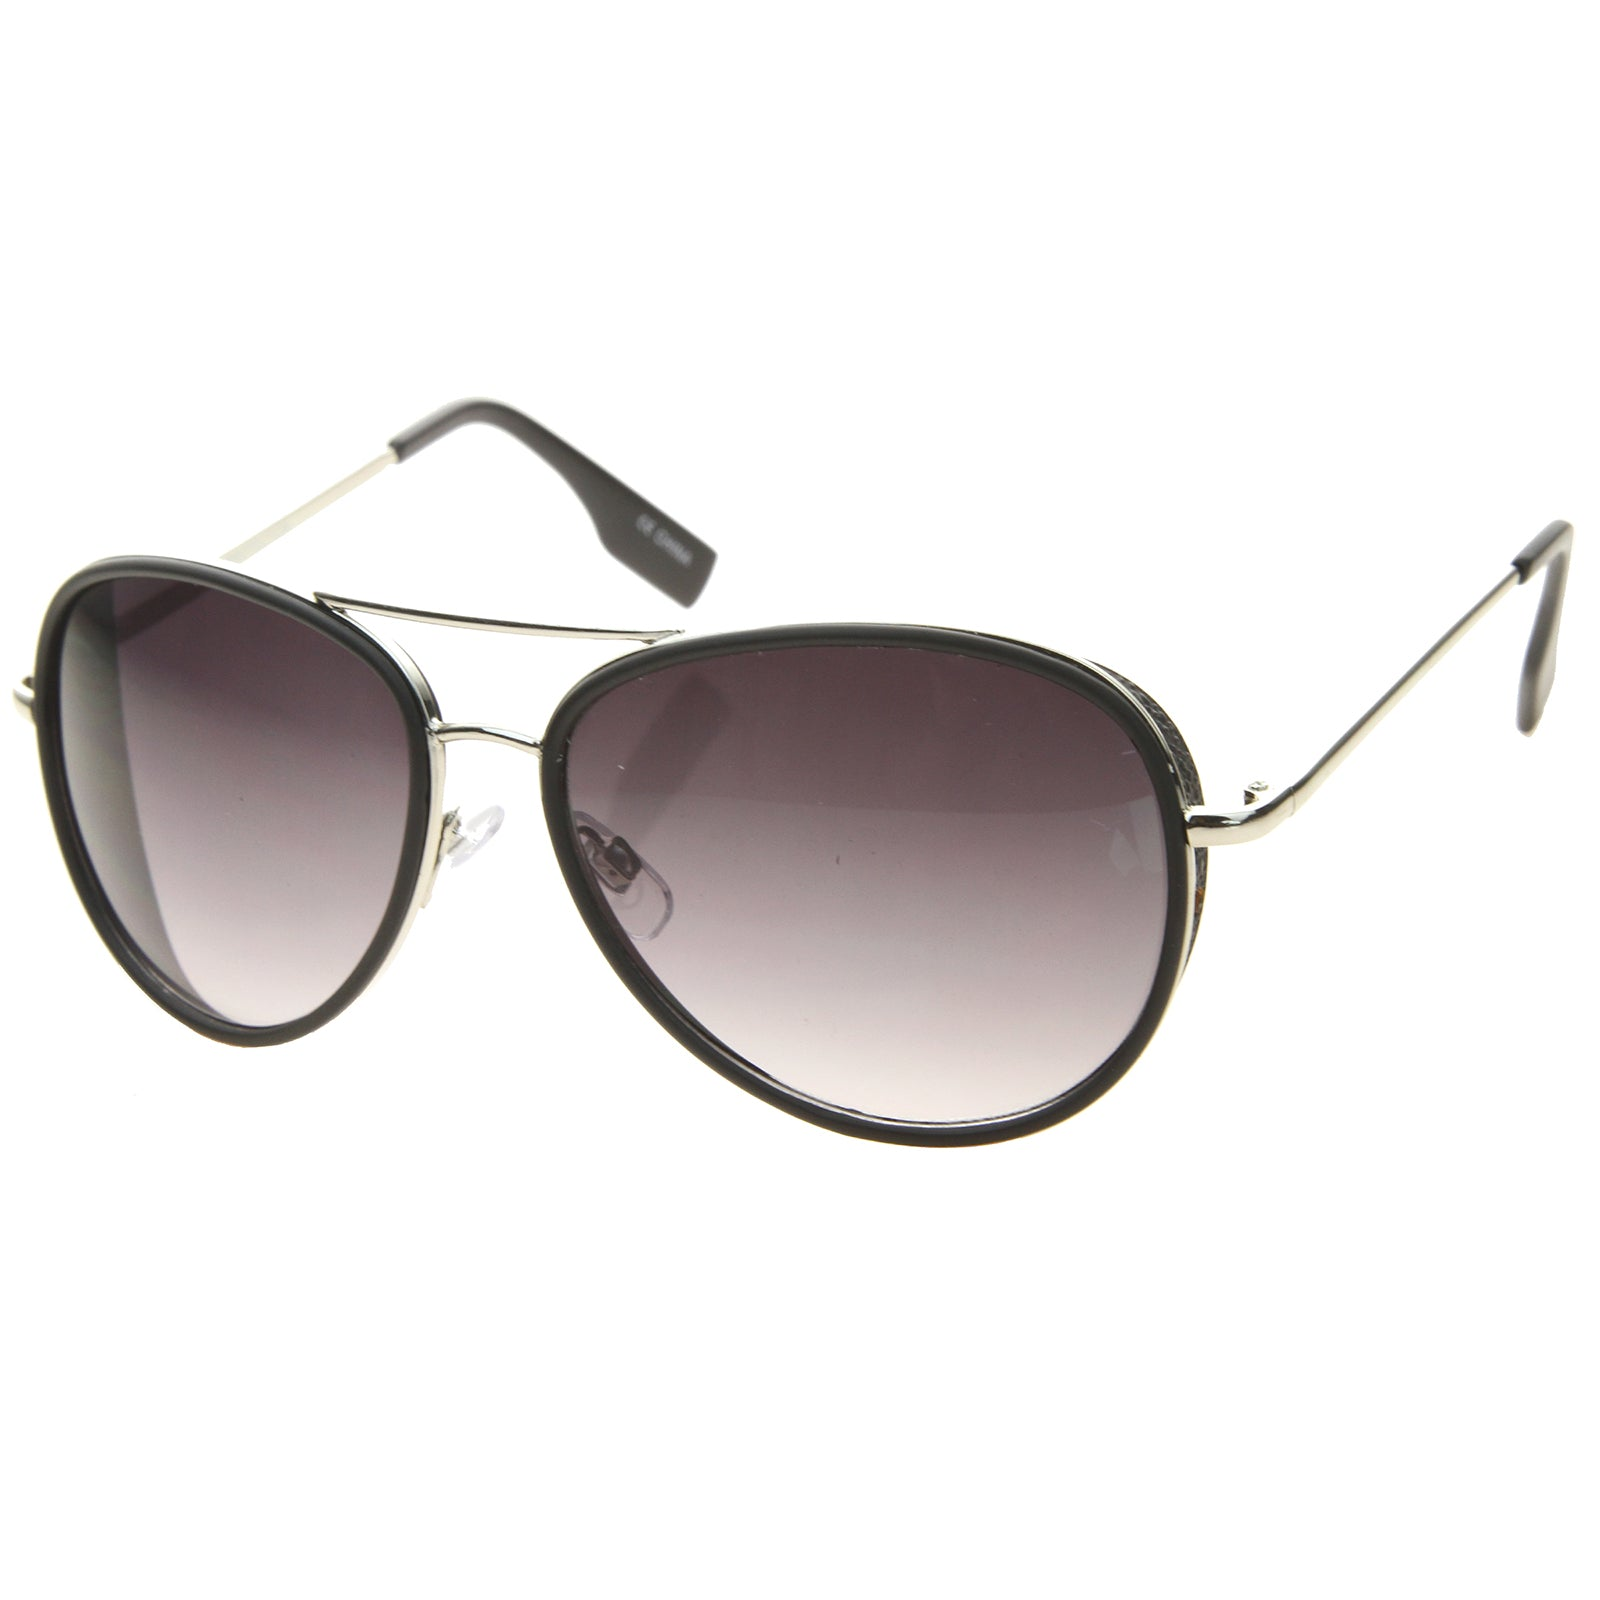 Womens Aviator Sunglasses With UV400 Protected Gradient Lens - sunglass.la - 6